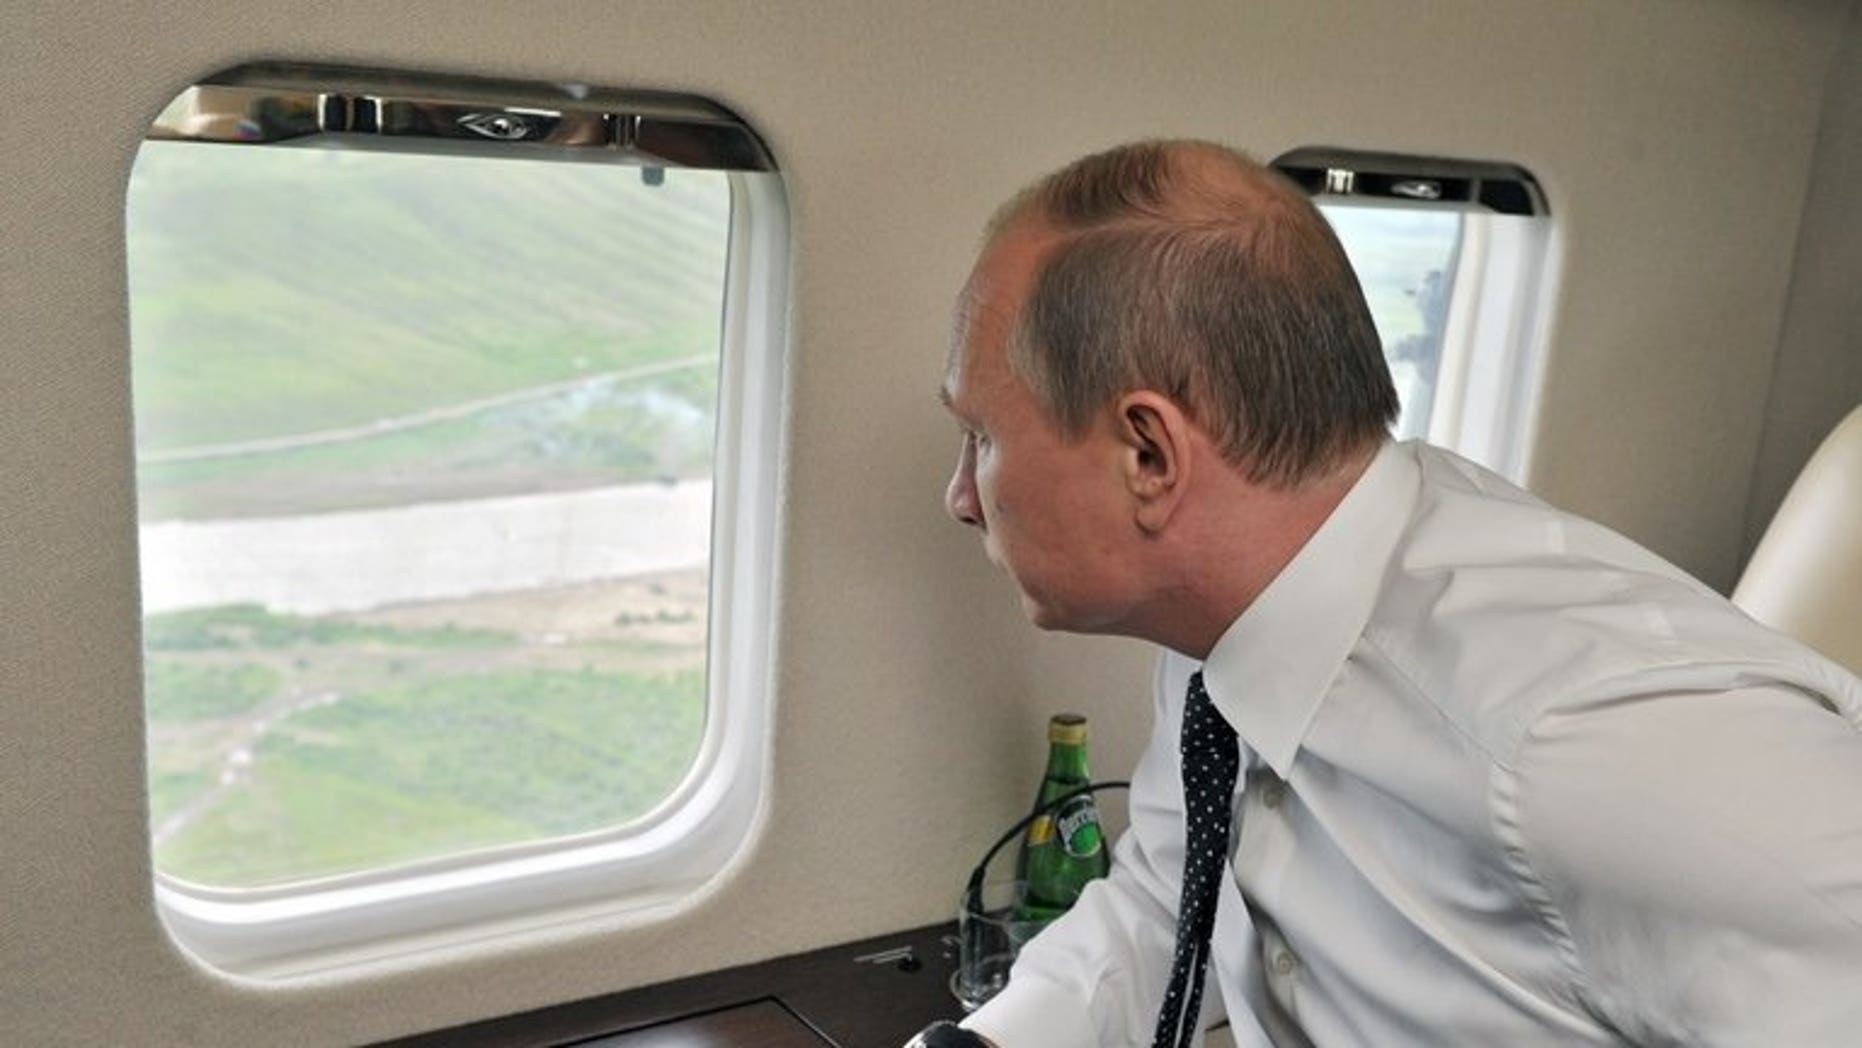 Russian President Vladimir Putin watches military exercises from a plane near the eastern Siberian city of Chita on July 17, 2013. President Vladimir Putin is to visit Iran in August to try and restart talks on Tehran's controversial nuclear programme, Russia's Kommersant daily reported on Wednesday.